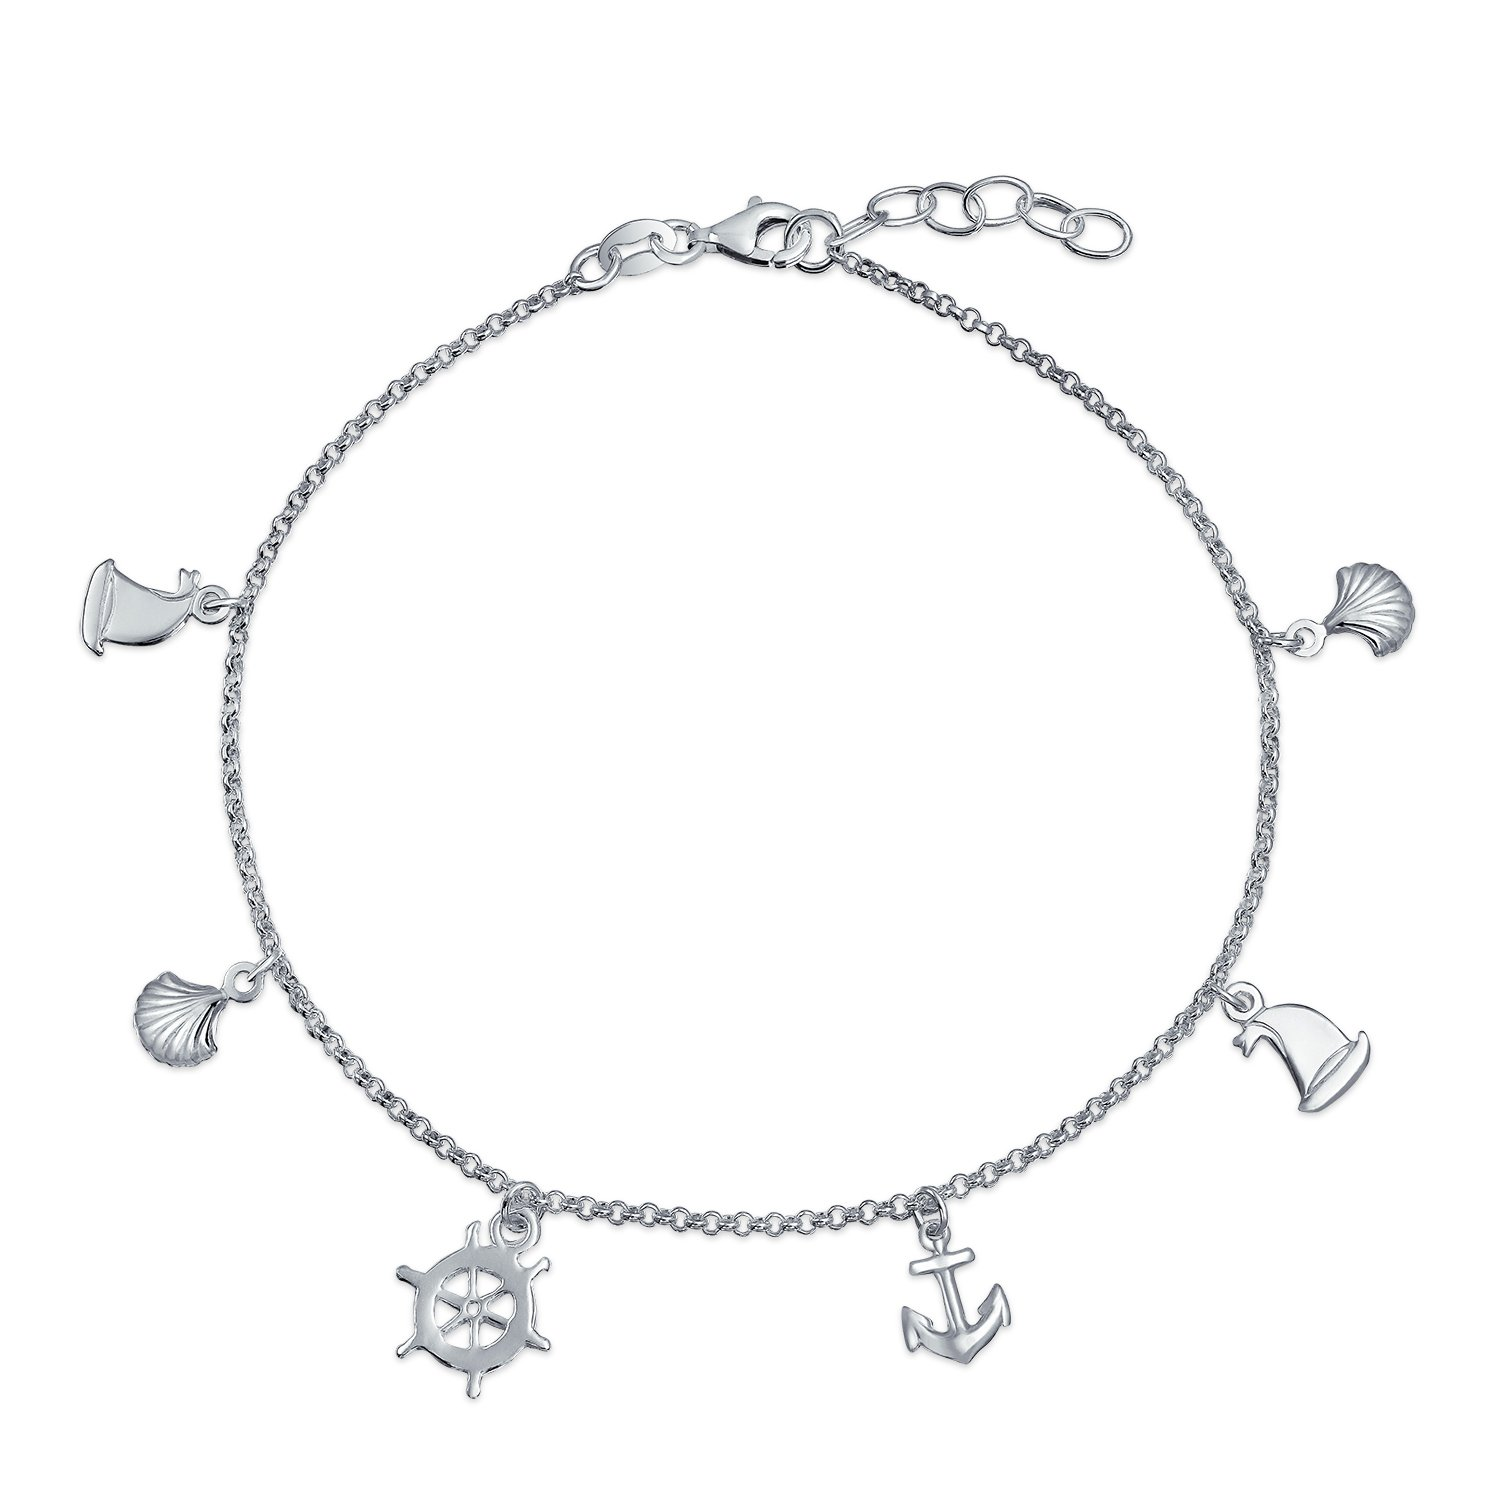 Bling Jewelry Silver Seashell Anchor Sailboat Nautical Charm Anklet 9in SRN-DJ06-6283A-1